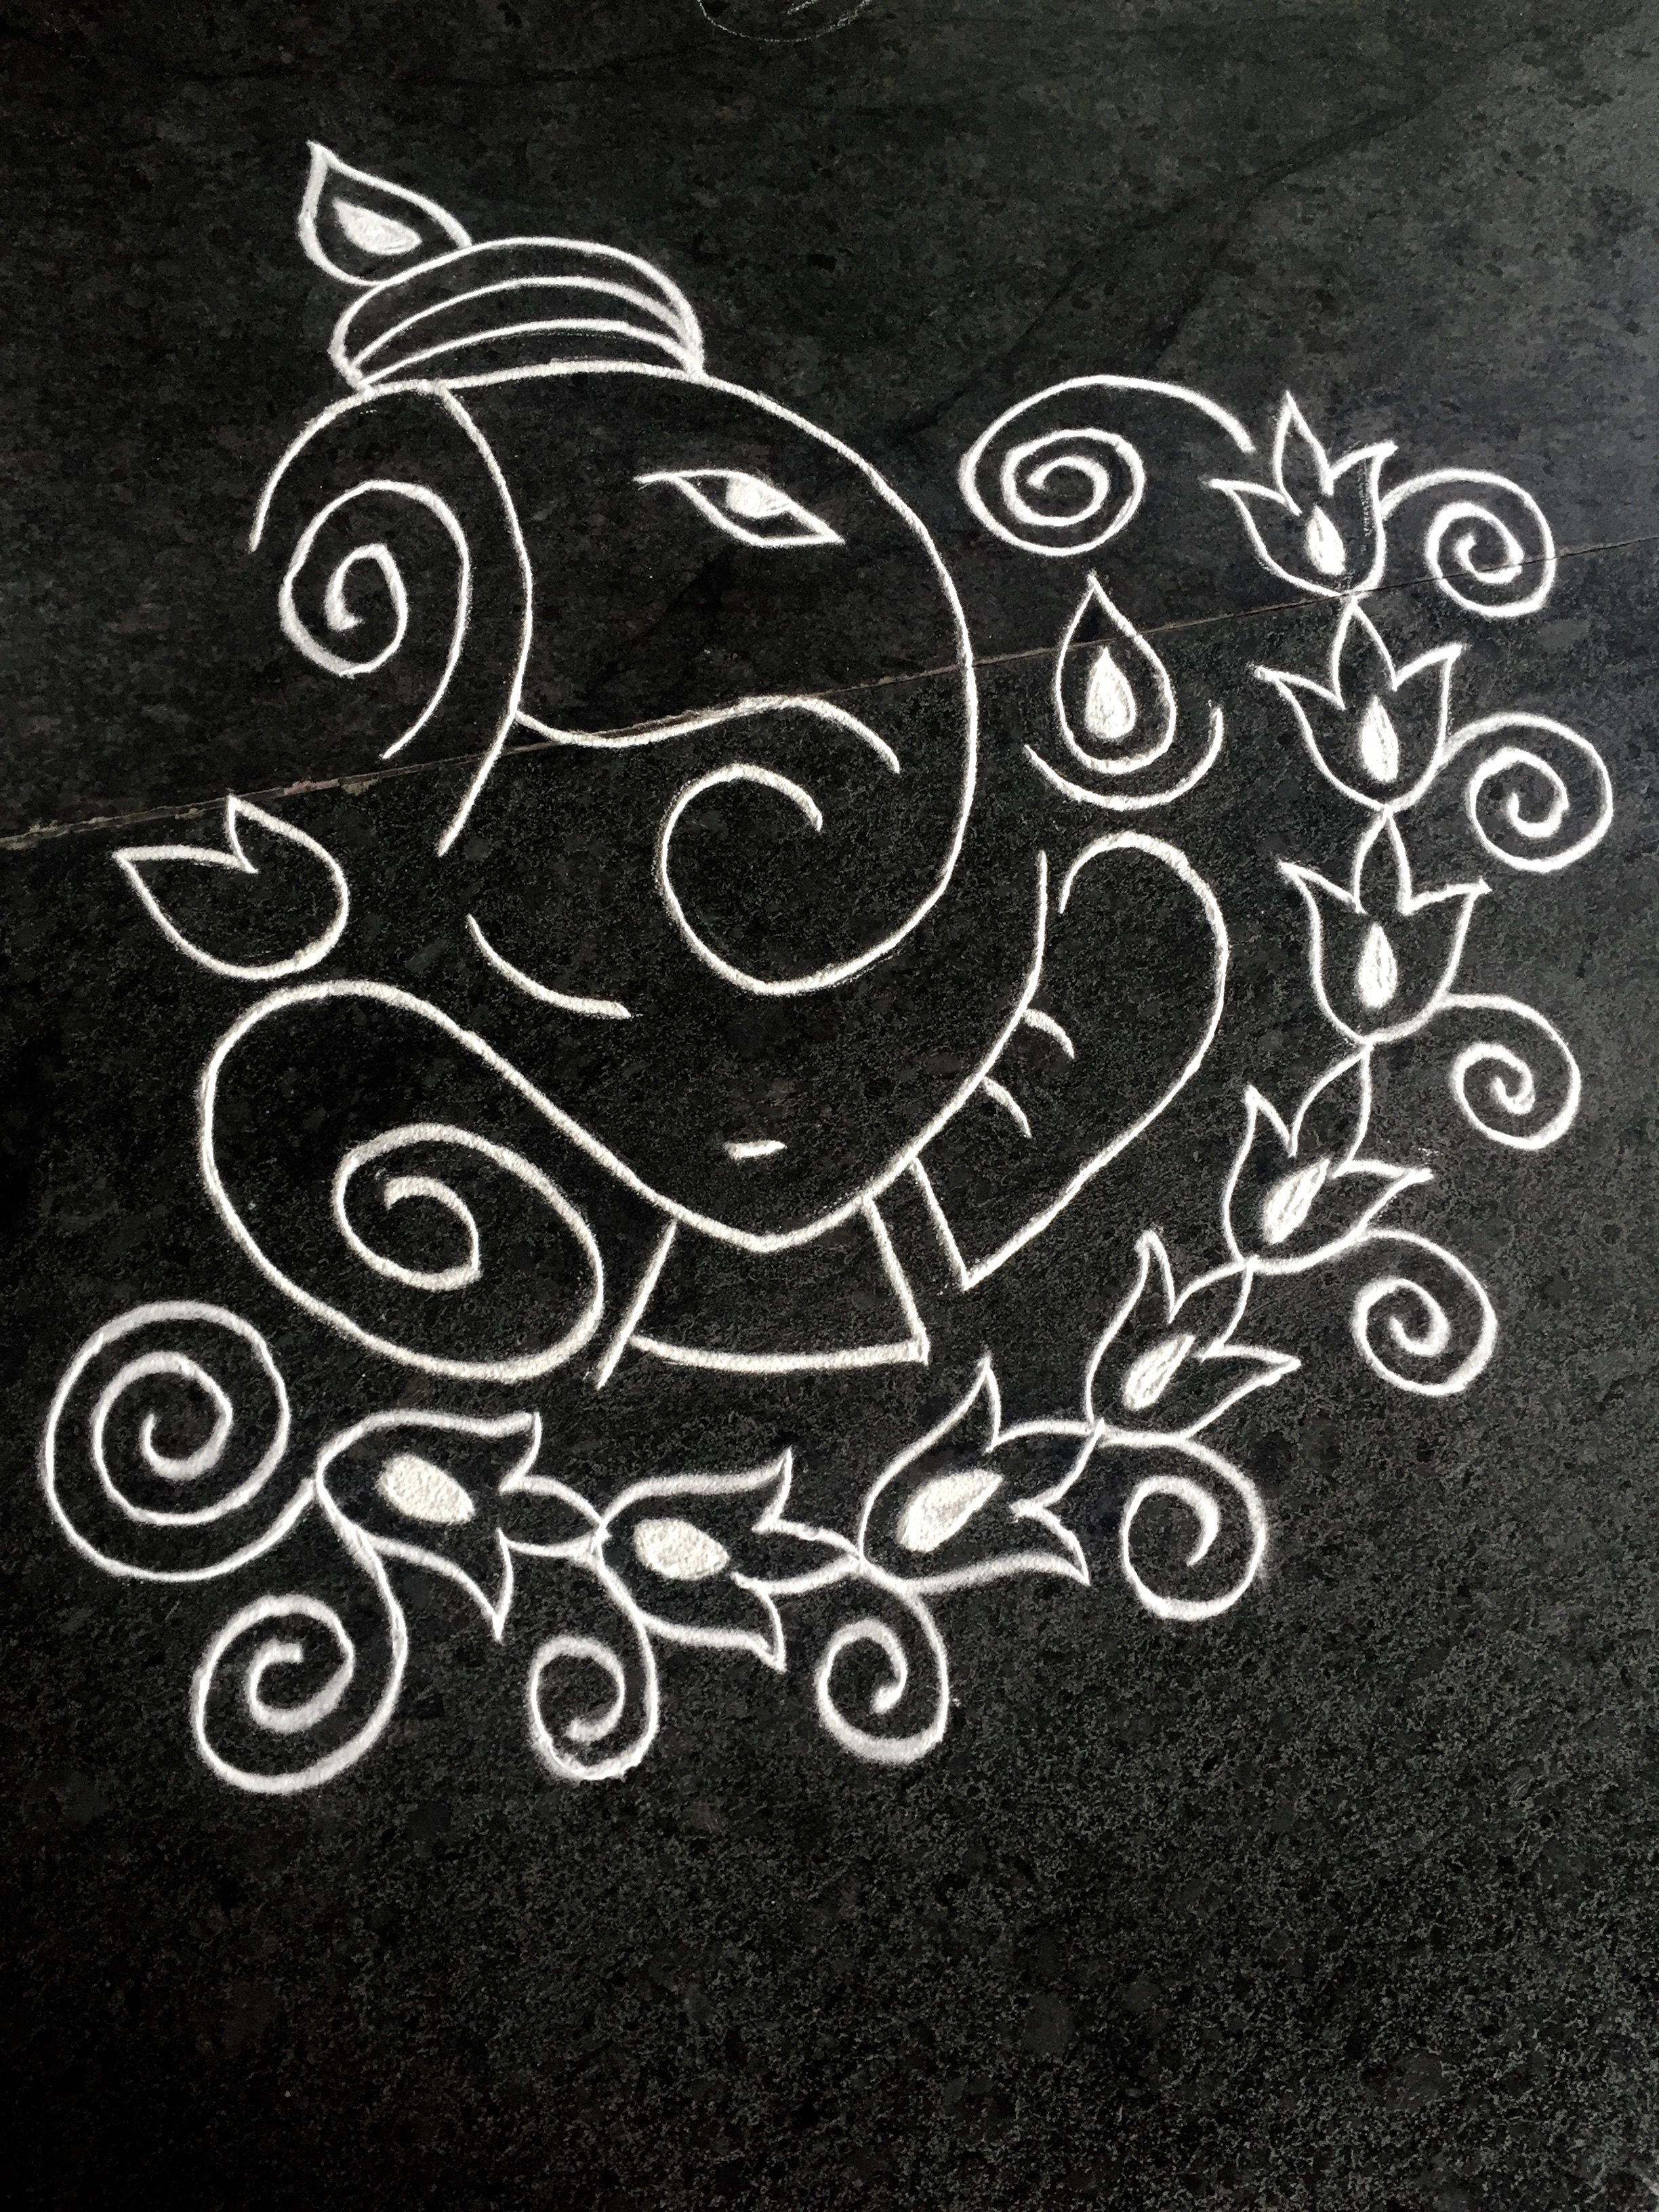 Ganesha rangoli diwali rangoli indian rangoli small rangoli design beautiful rangoli designs